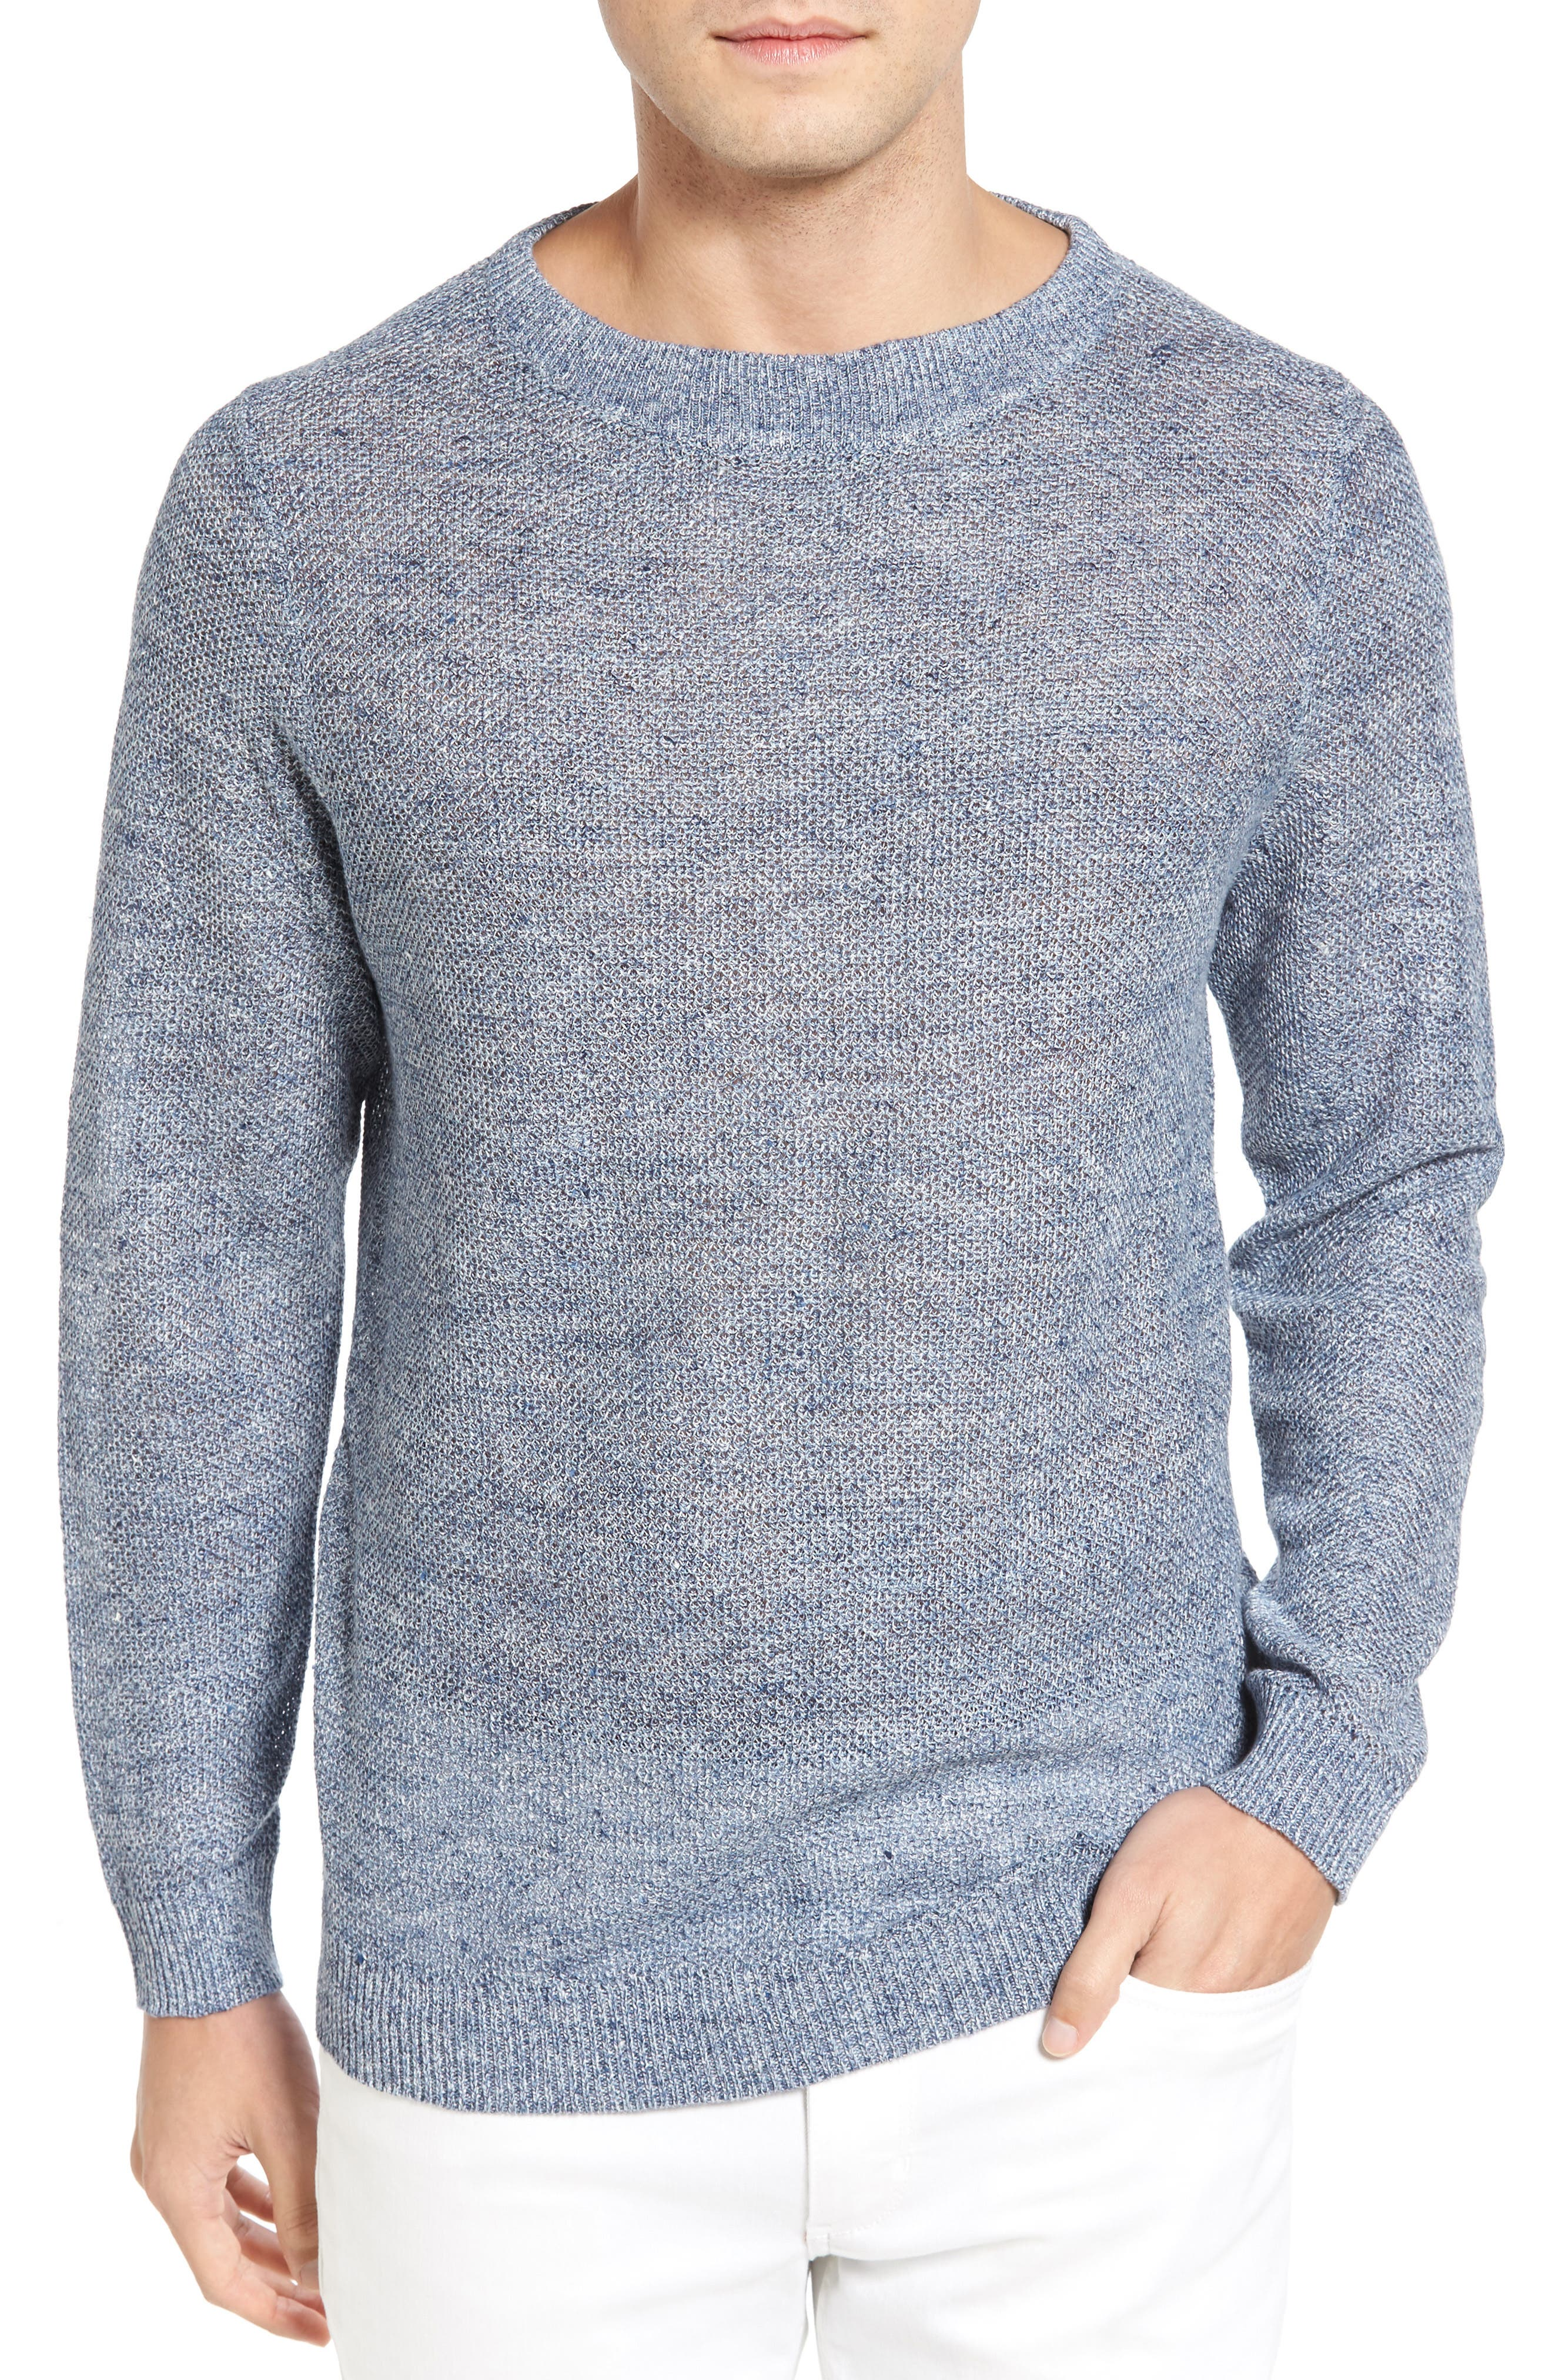 Main Image - Tommy Bahama Lino Bay Linen Sweater